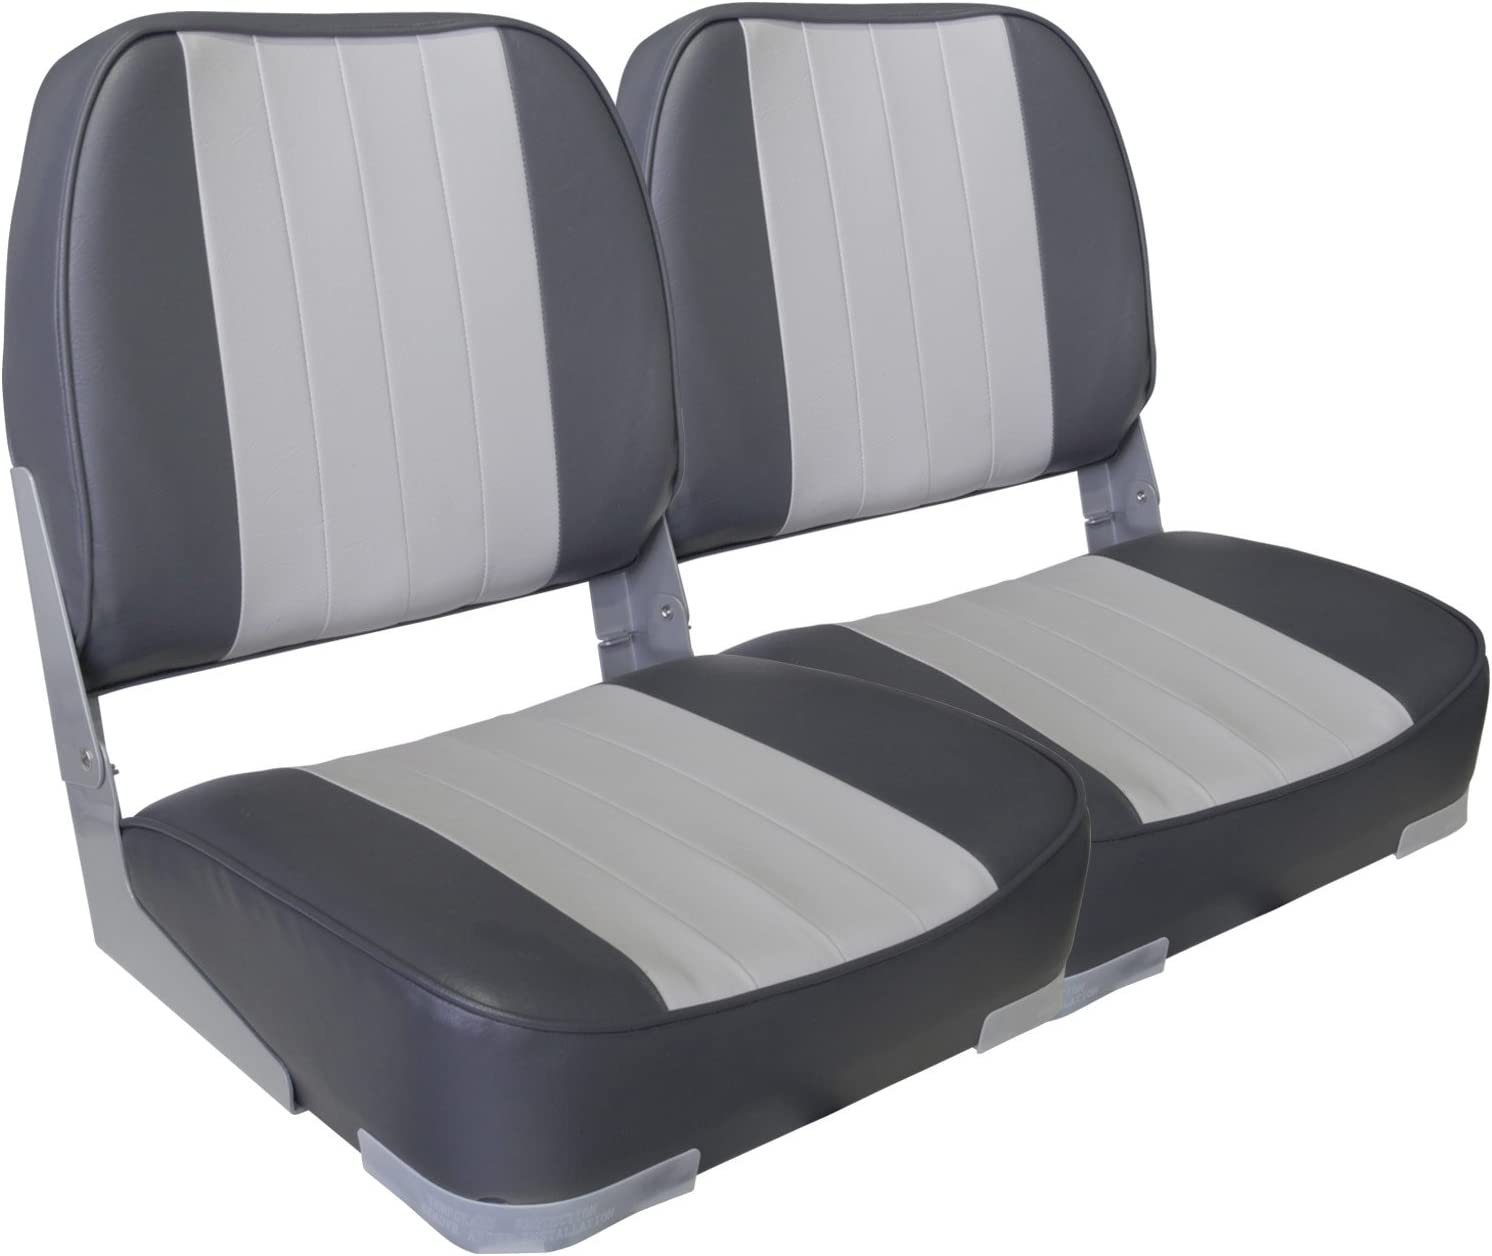 Leader Las Vegas Mall Accessories A Pair of New Low Folding Seats S Back Boat Ranking TOP20 2